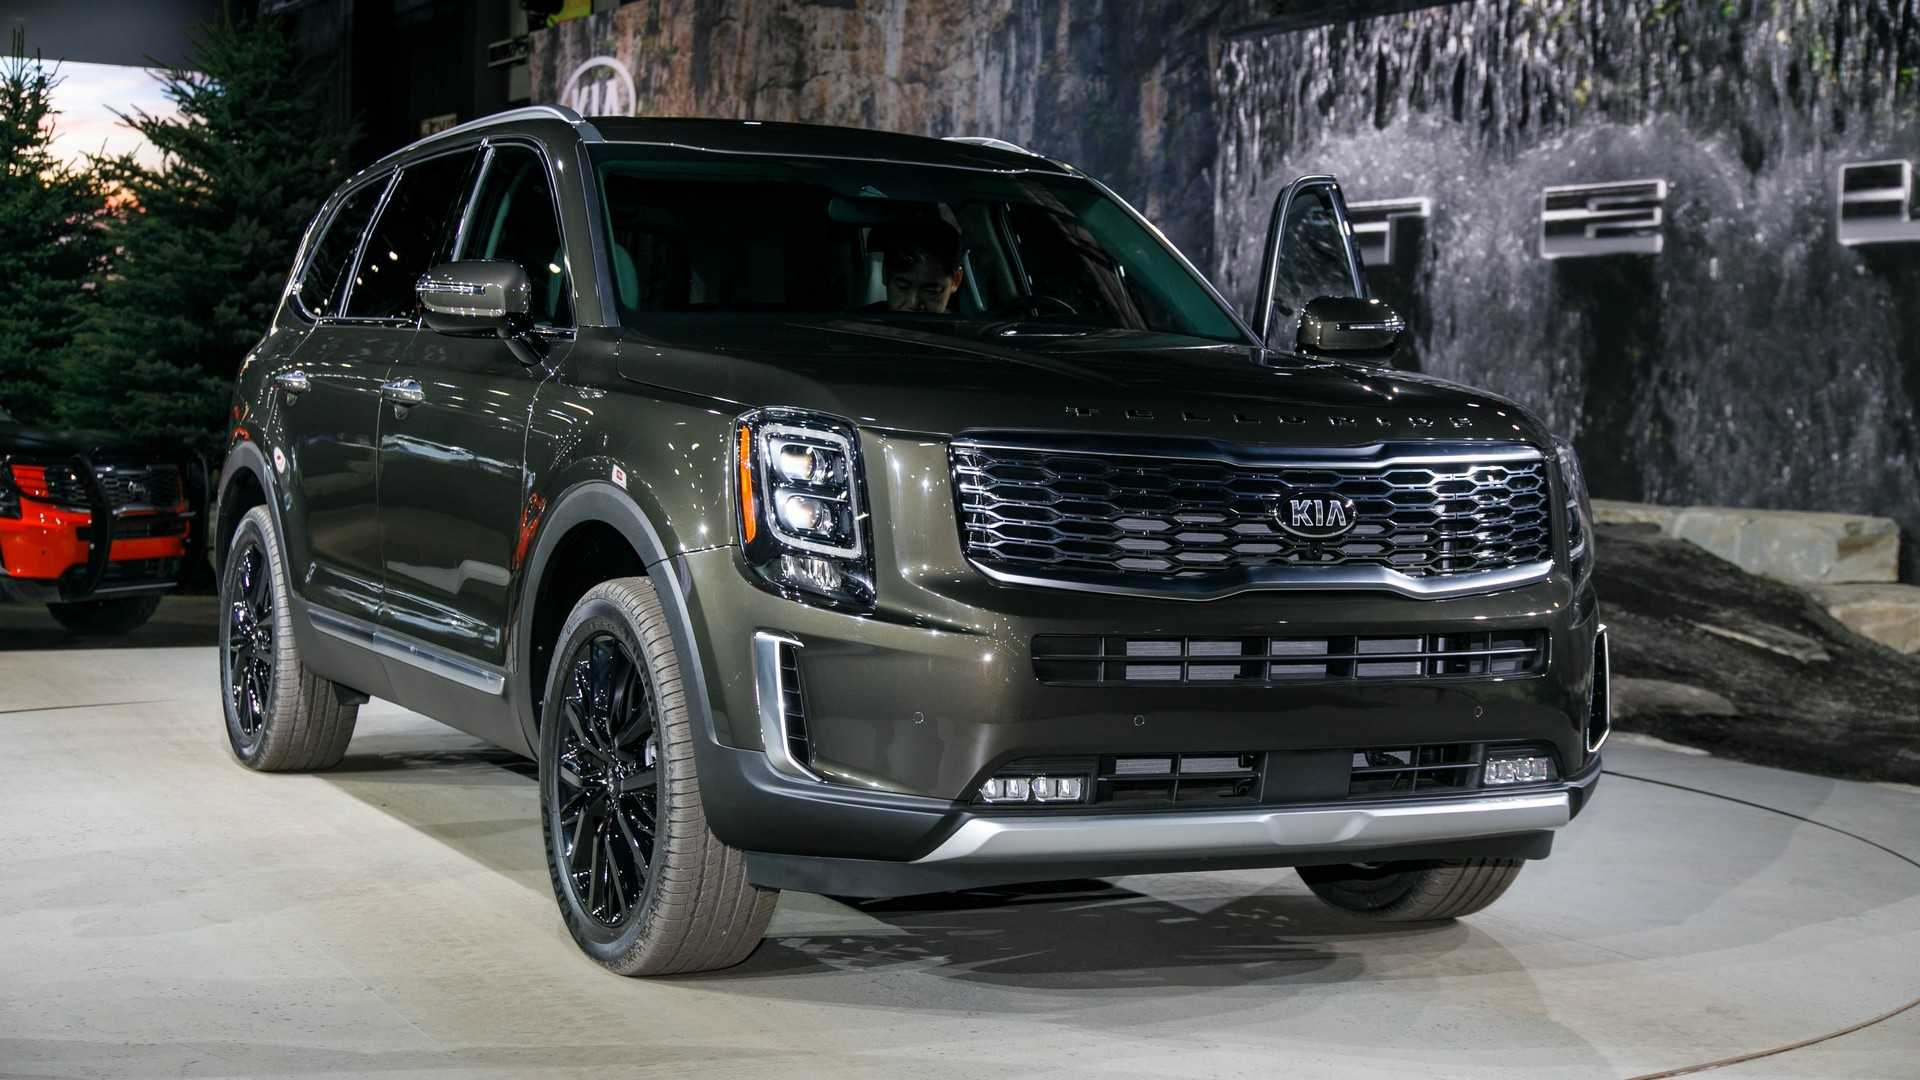 27 Gallery of 2020 Kia Telluride Australia Price with 2020 Kia Telluride Australia